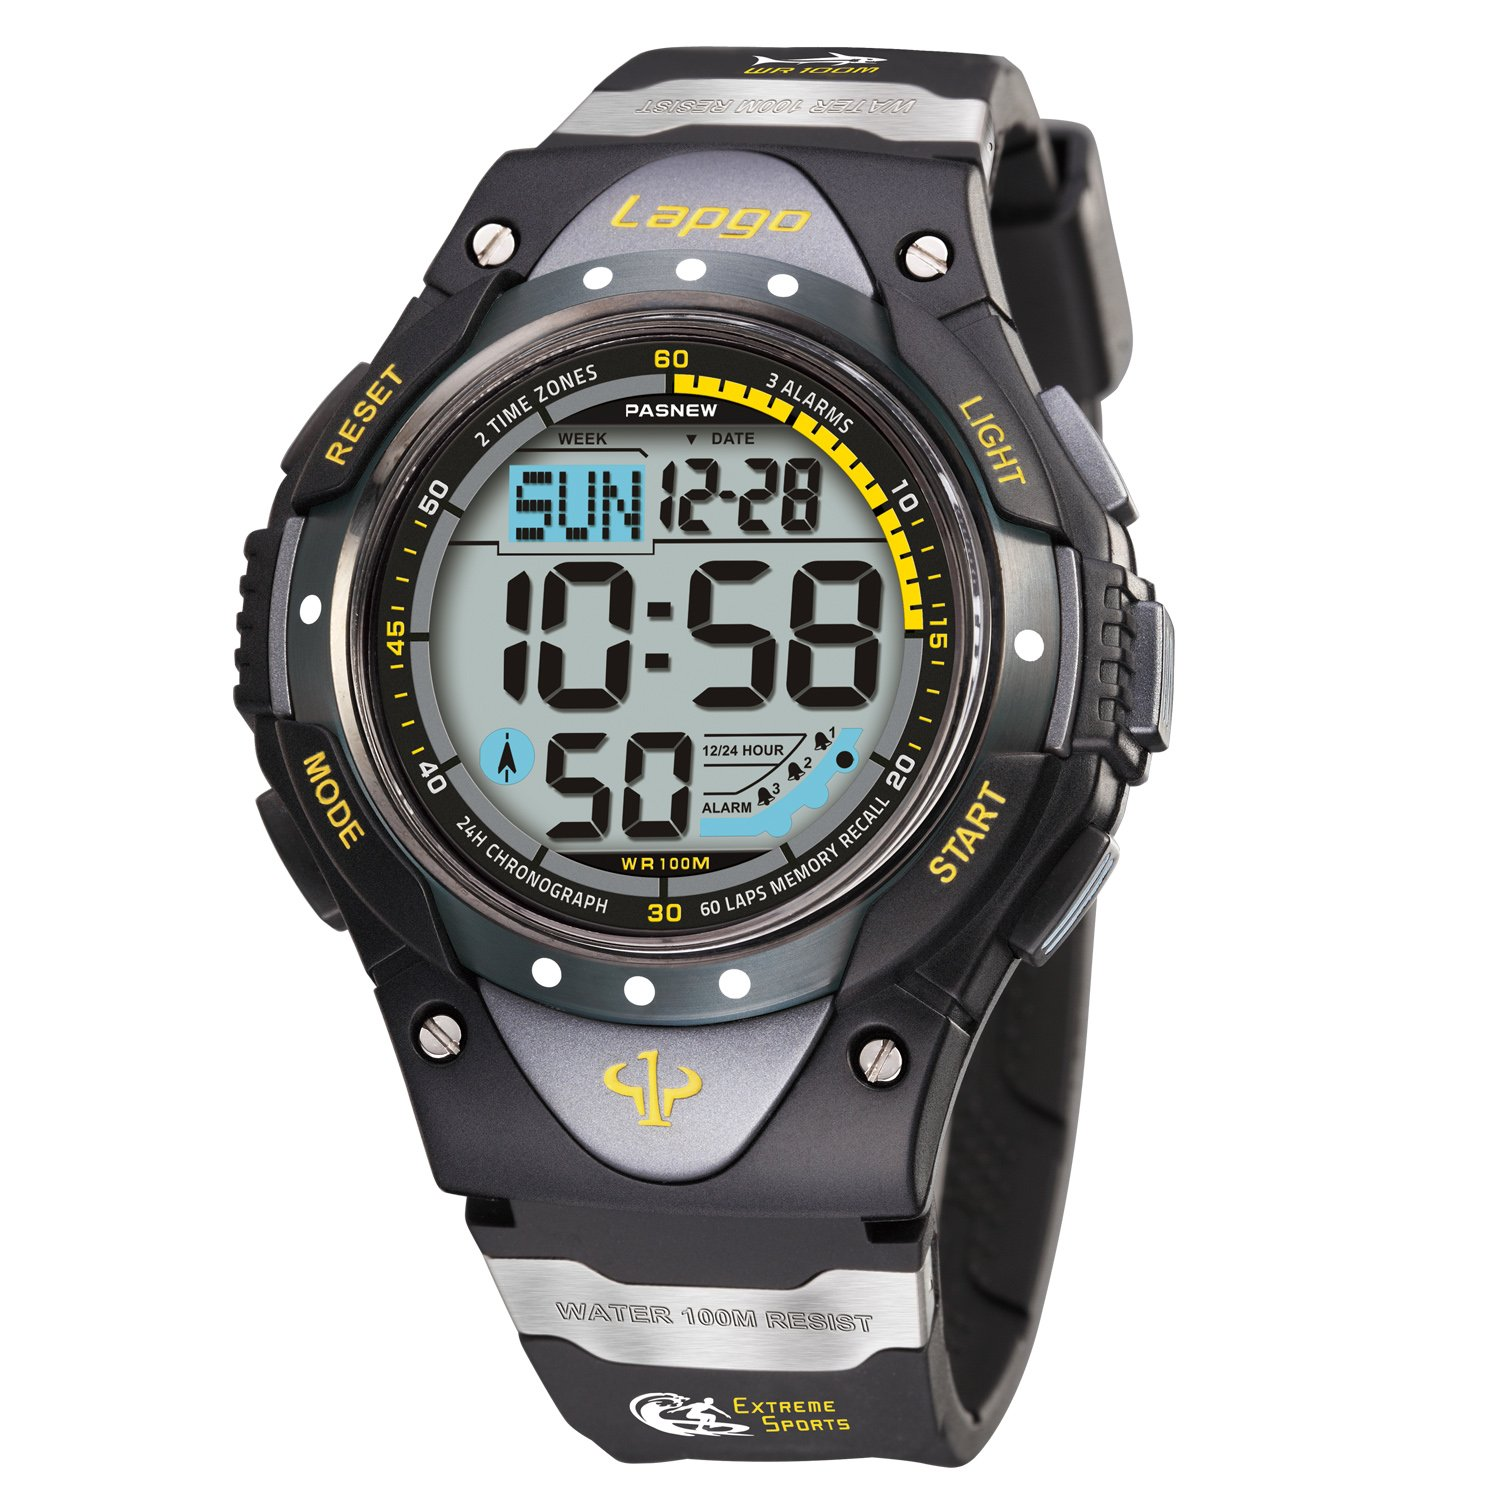 PASNEW Boys' Wrist Watch Waterproof Digital Sports Men Watches 1018d (Black Color) by PASNEW